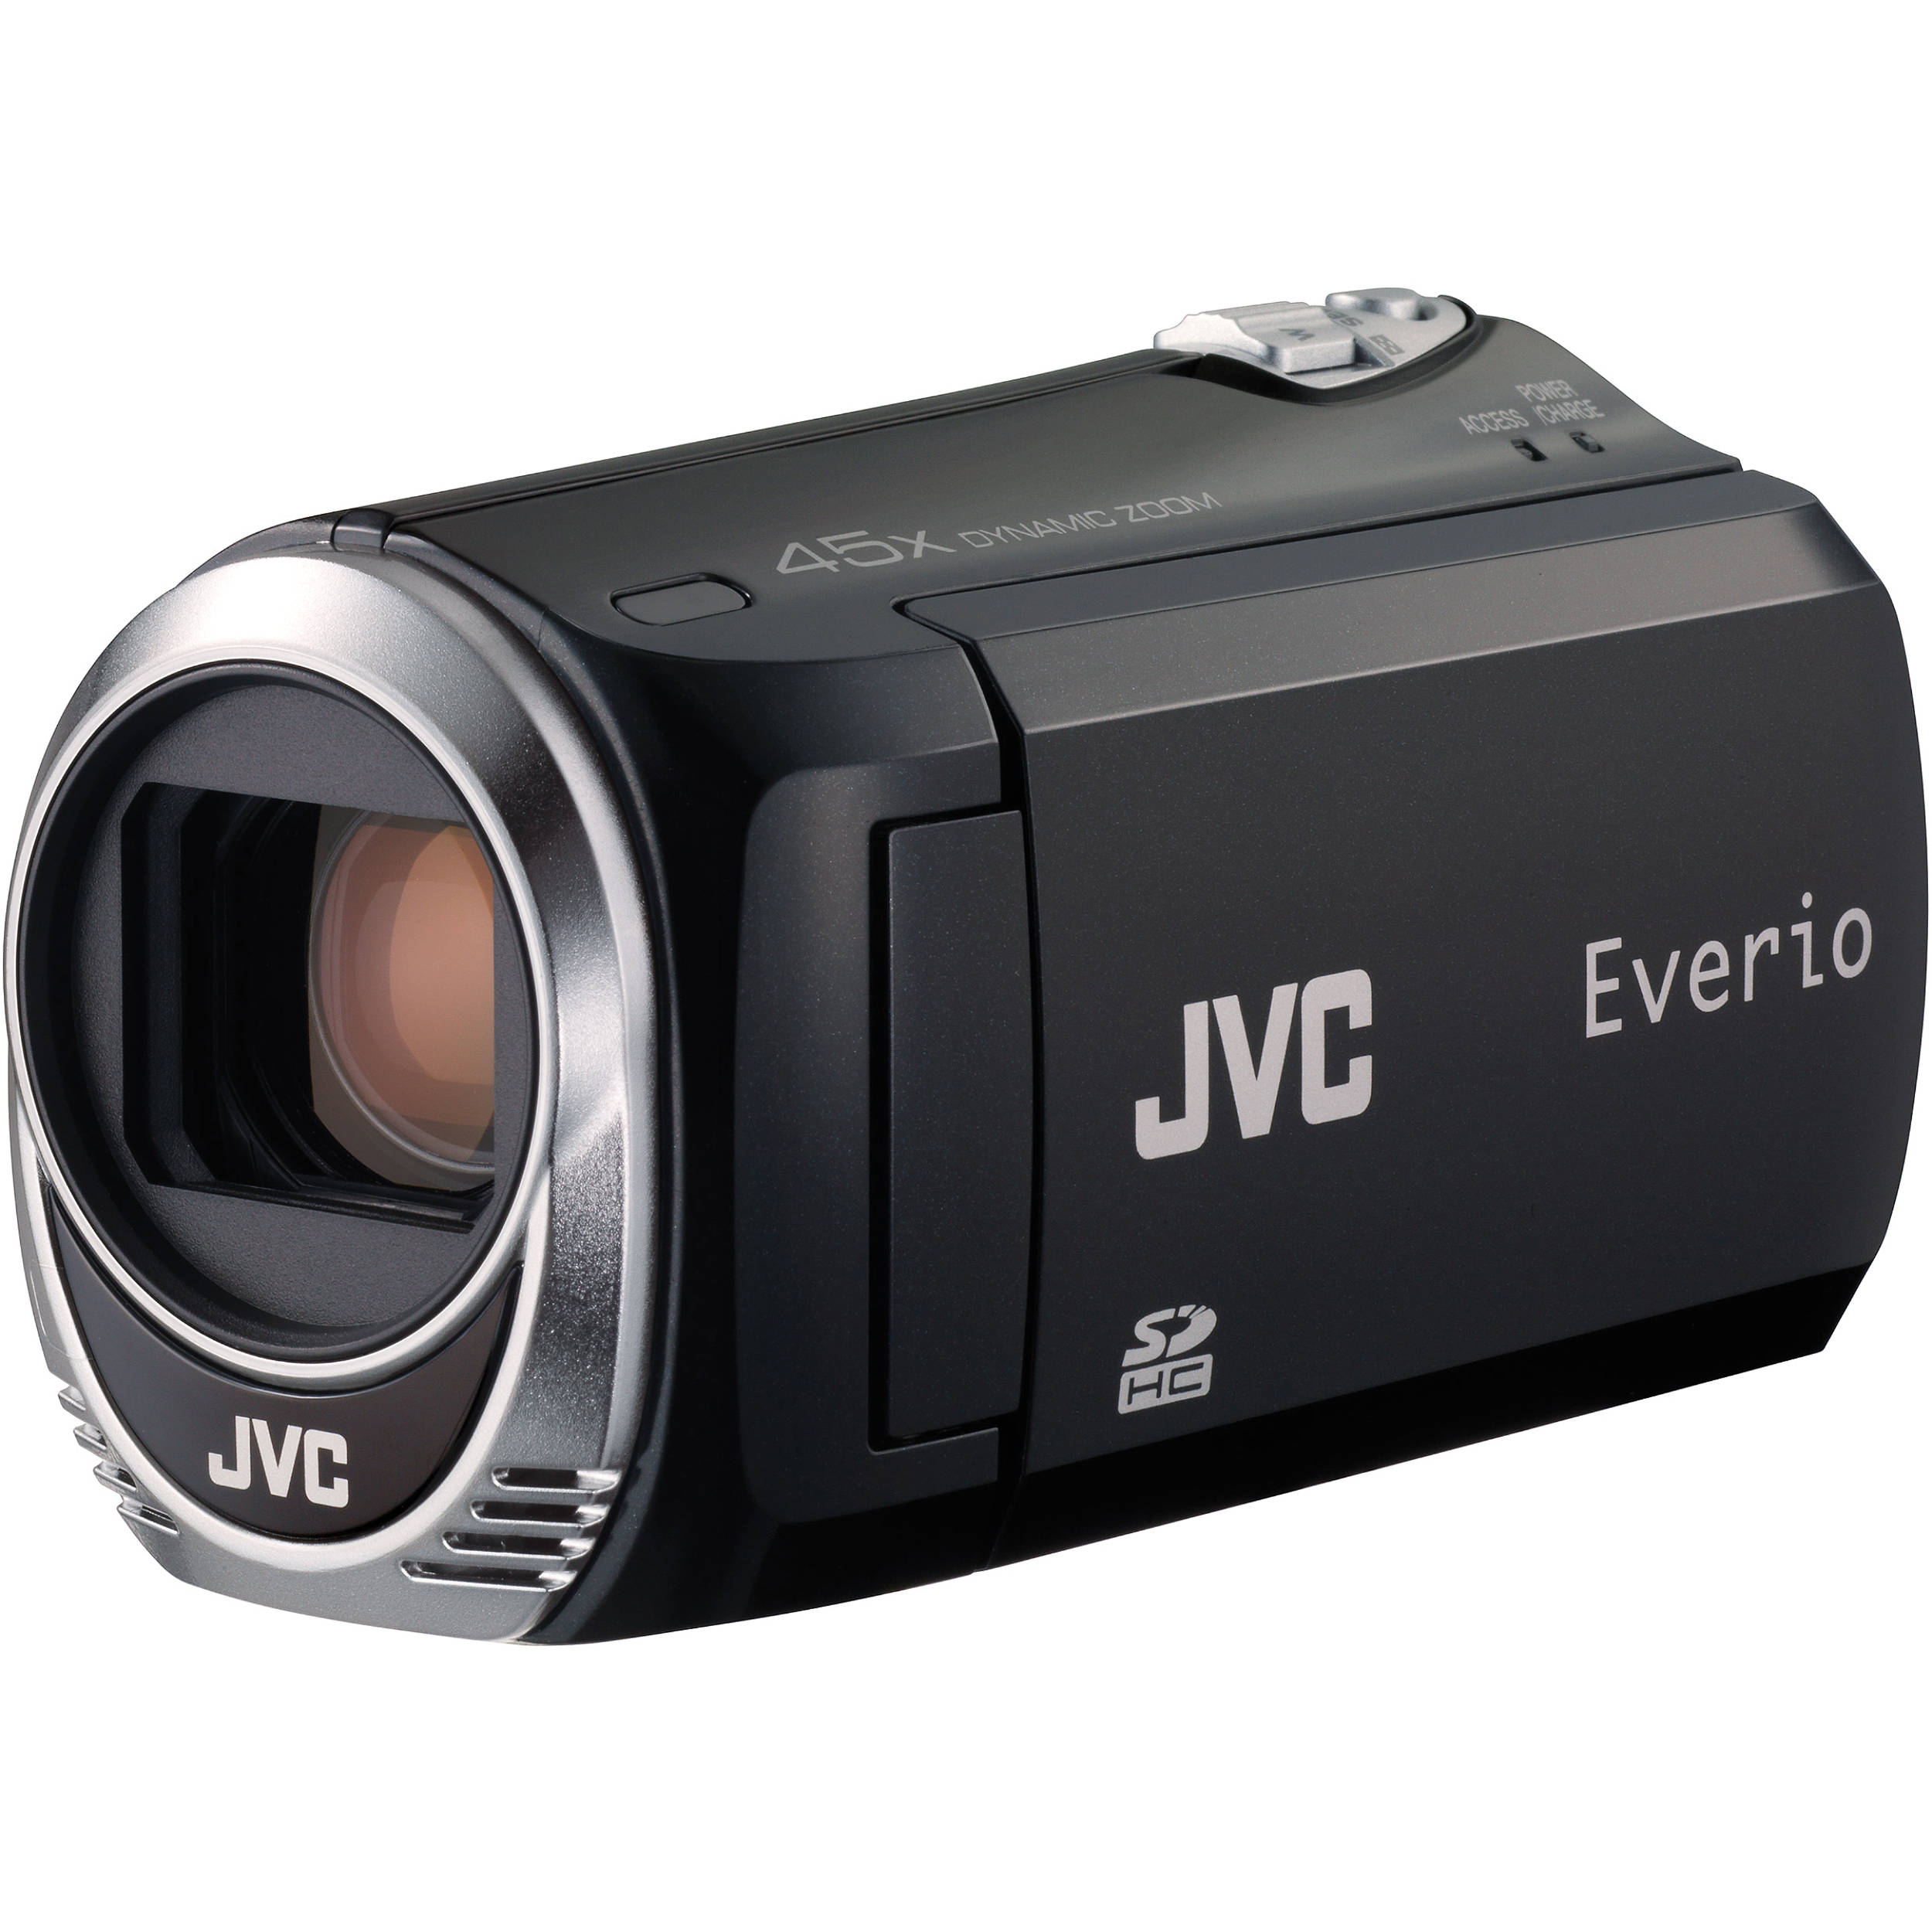 Memory Cards 2 Pack JVC Everio GZ-MG555 Camcorder Memory Card 2 x 8GB Secure Digital High Capacity SDHC